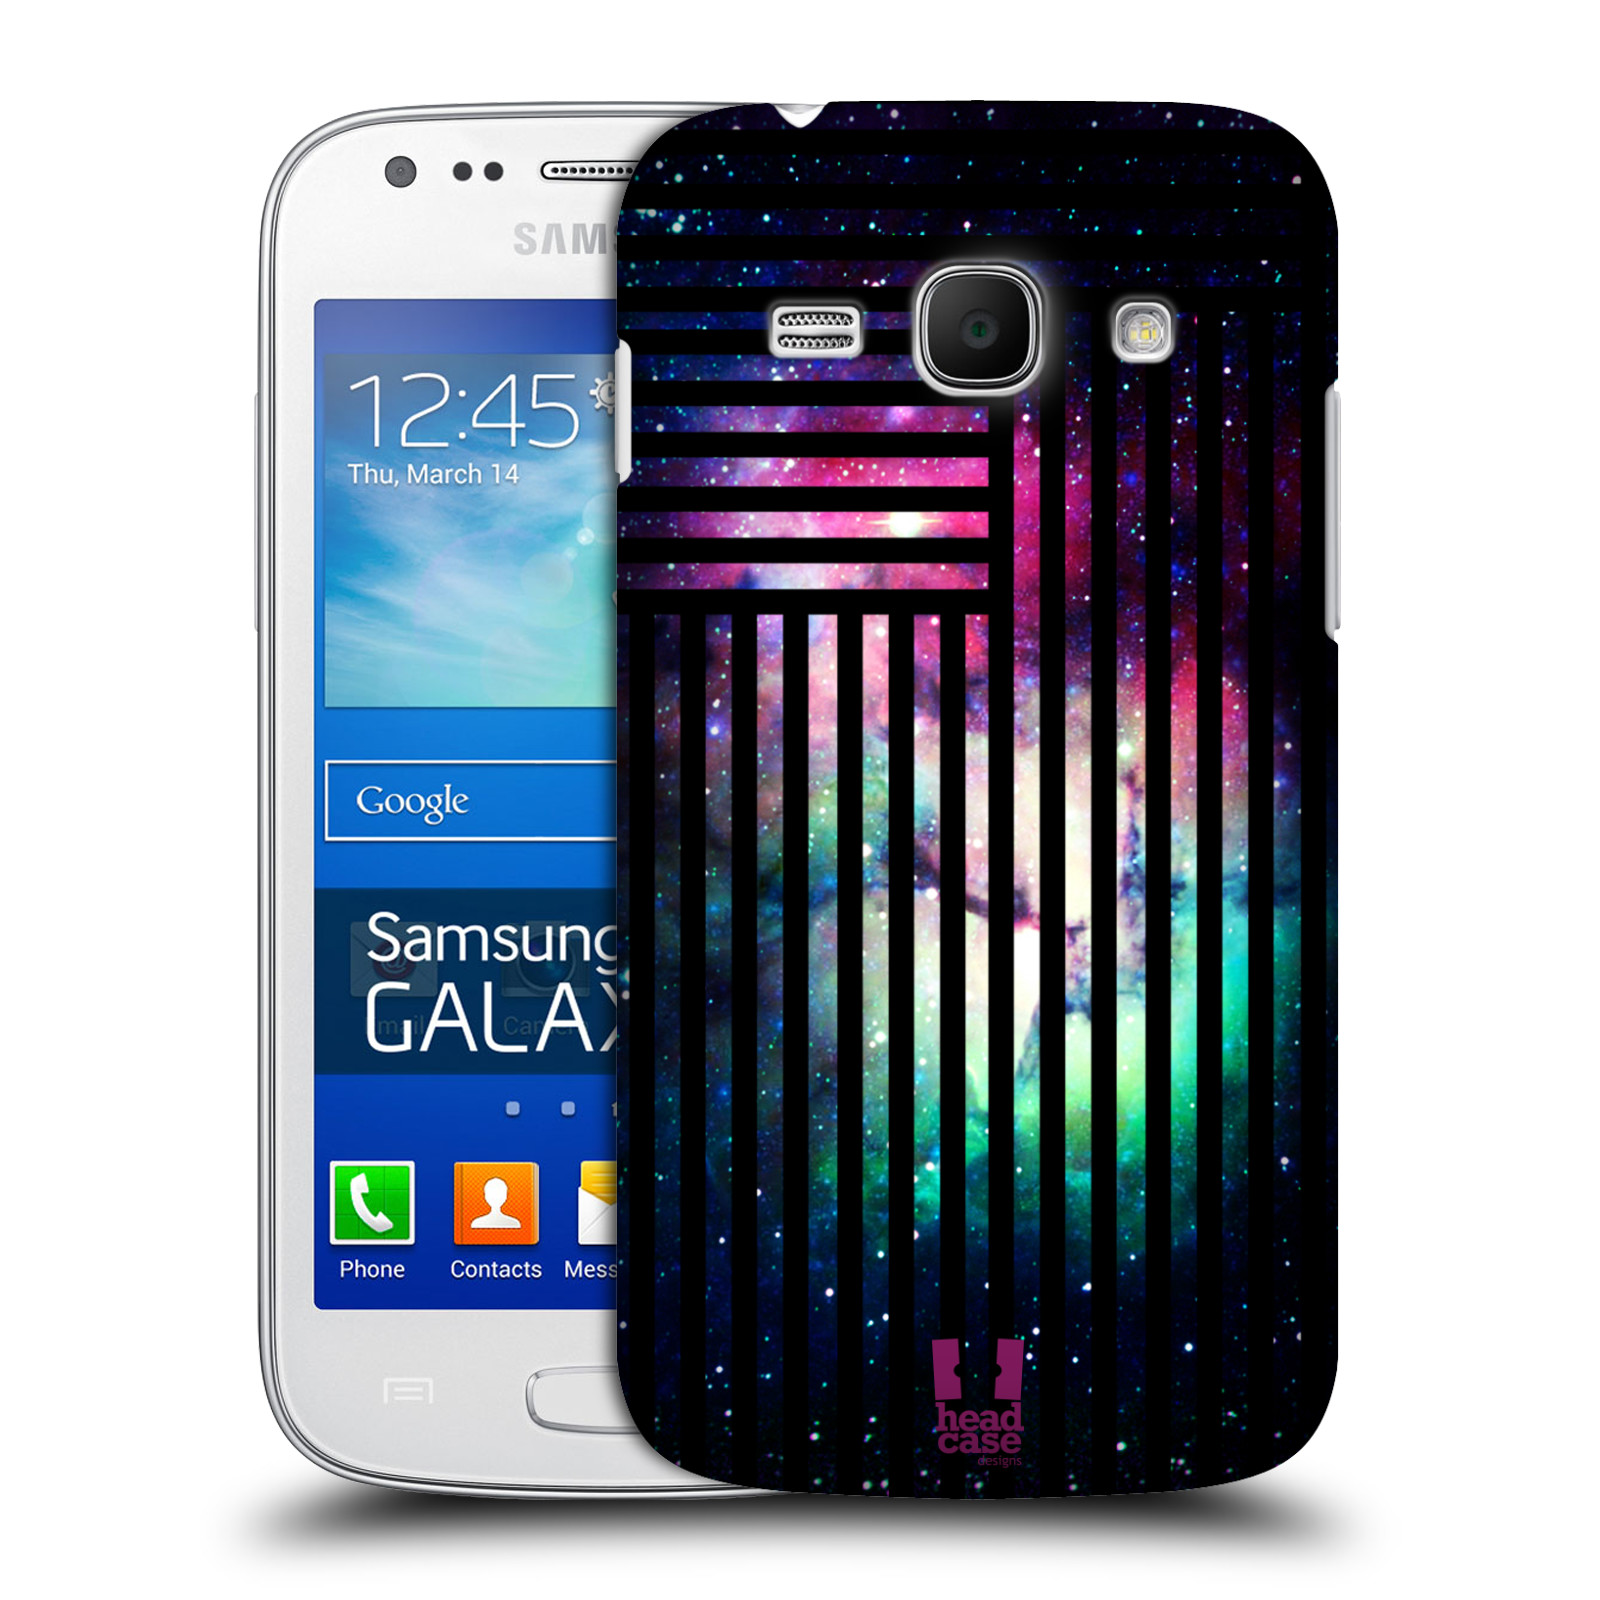 HEAD CASE DESIGNS TREND MIX CASE COVER FOR SAMSUNG GALAXY ACE 3 S7270